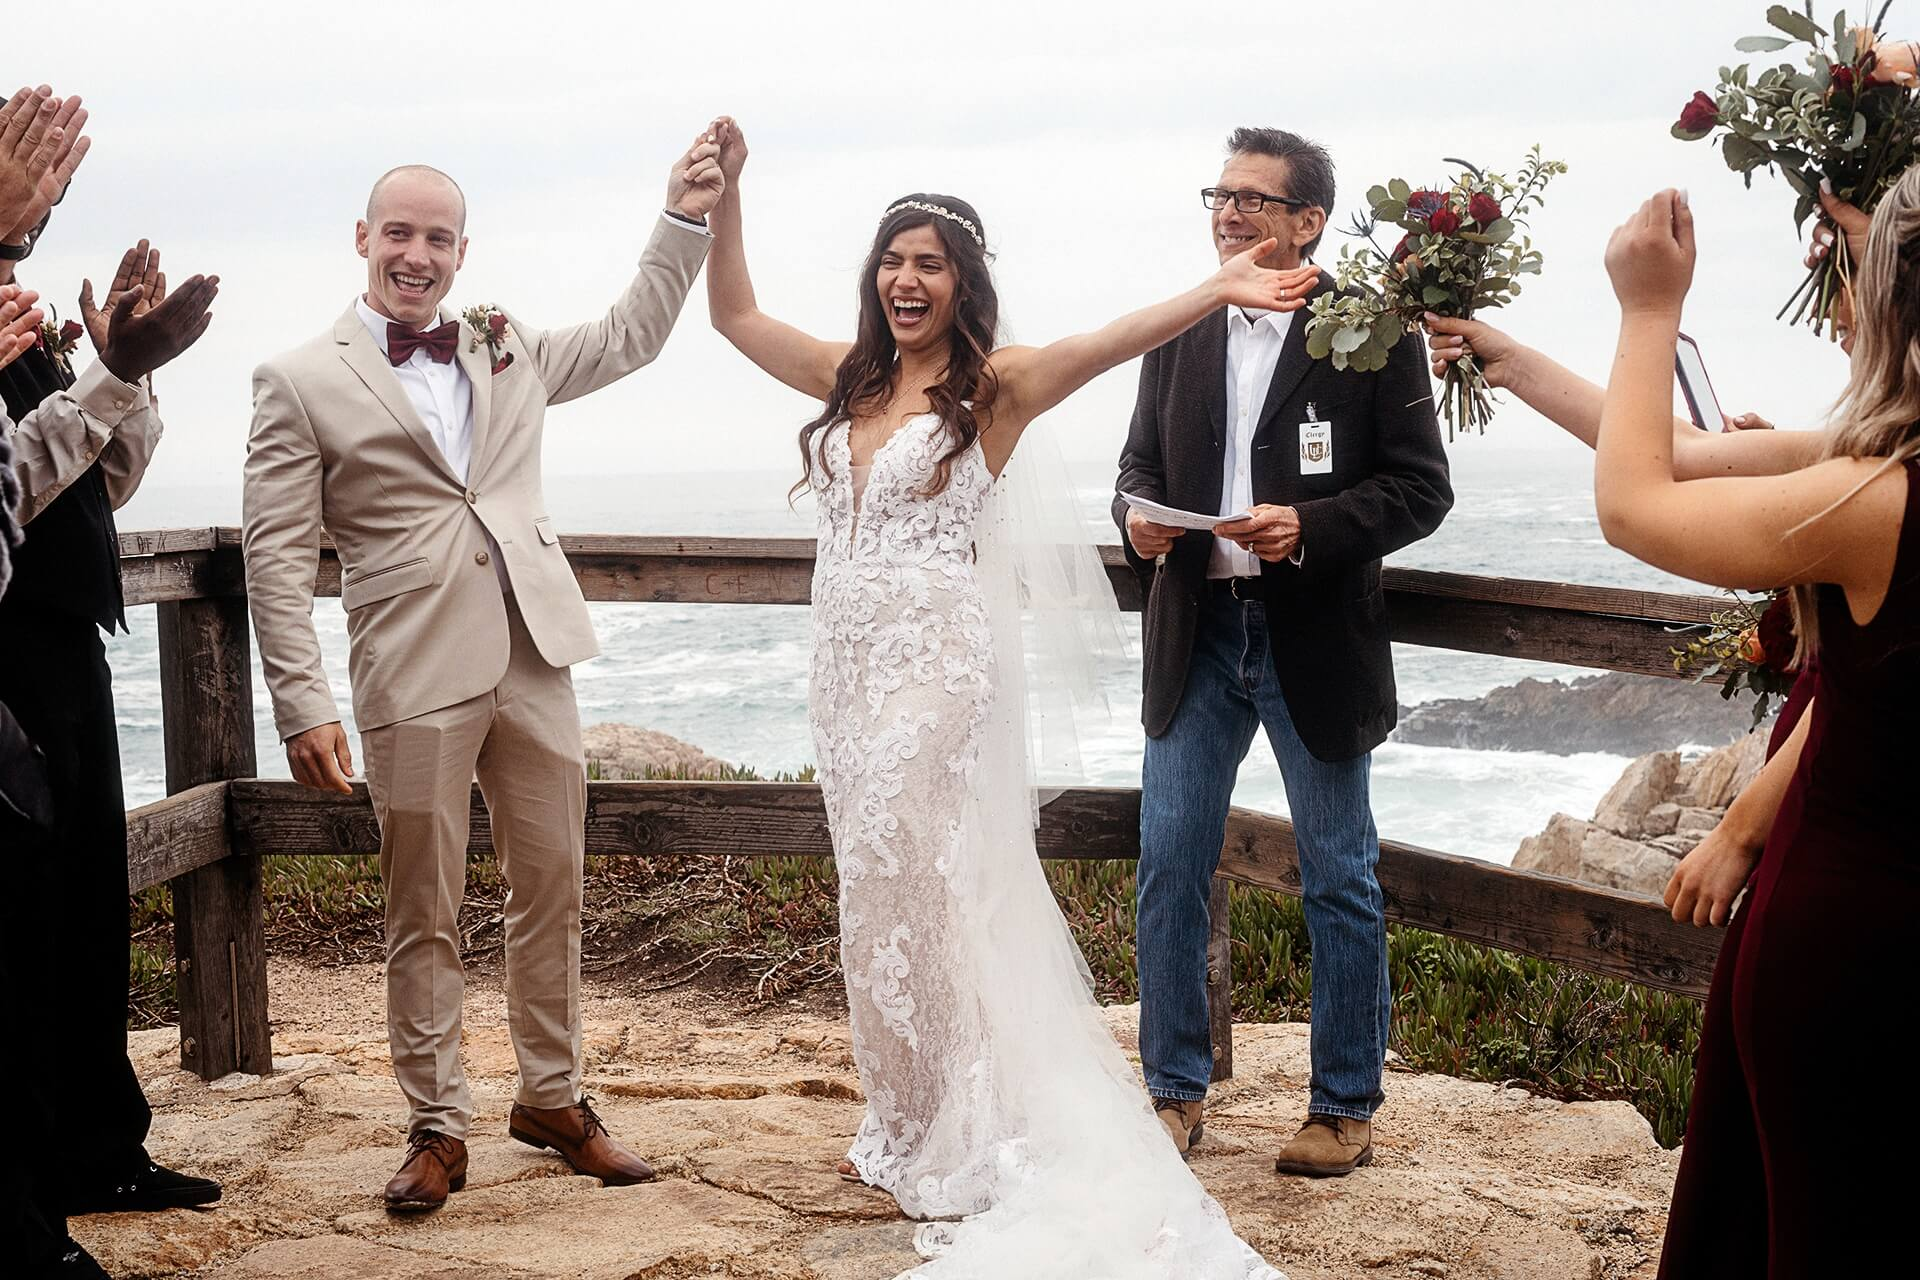 Big Sur, California outdoor ceremony wedding pics   A close family friend became ordained in order to marry the couple